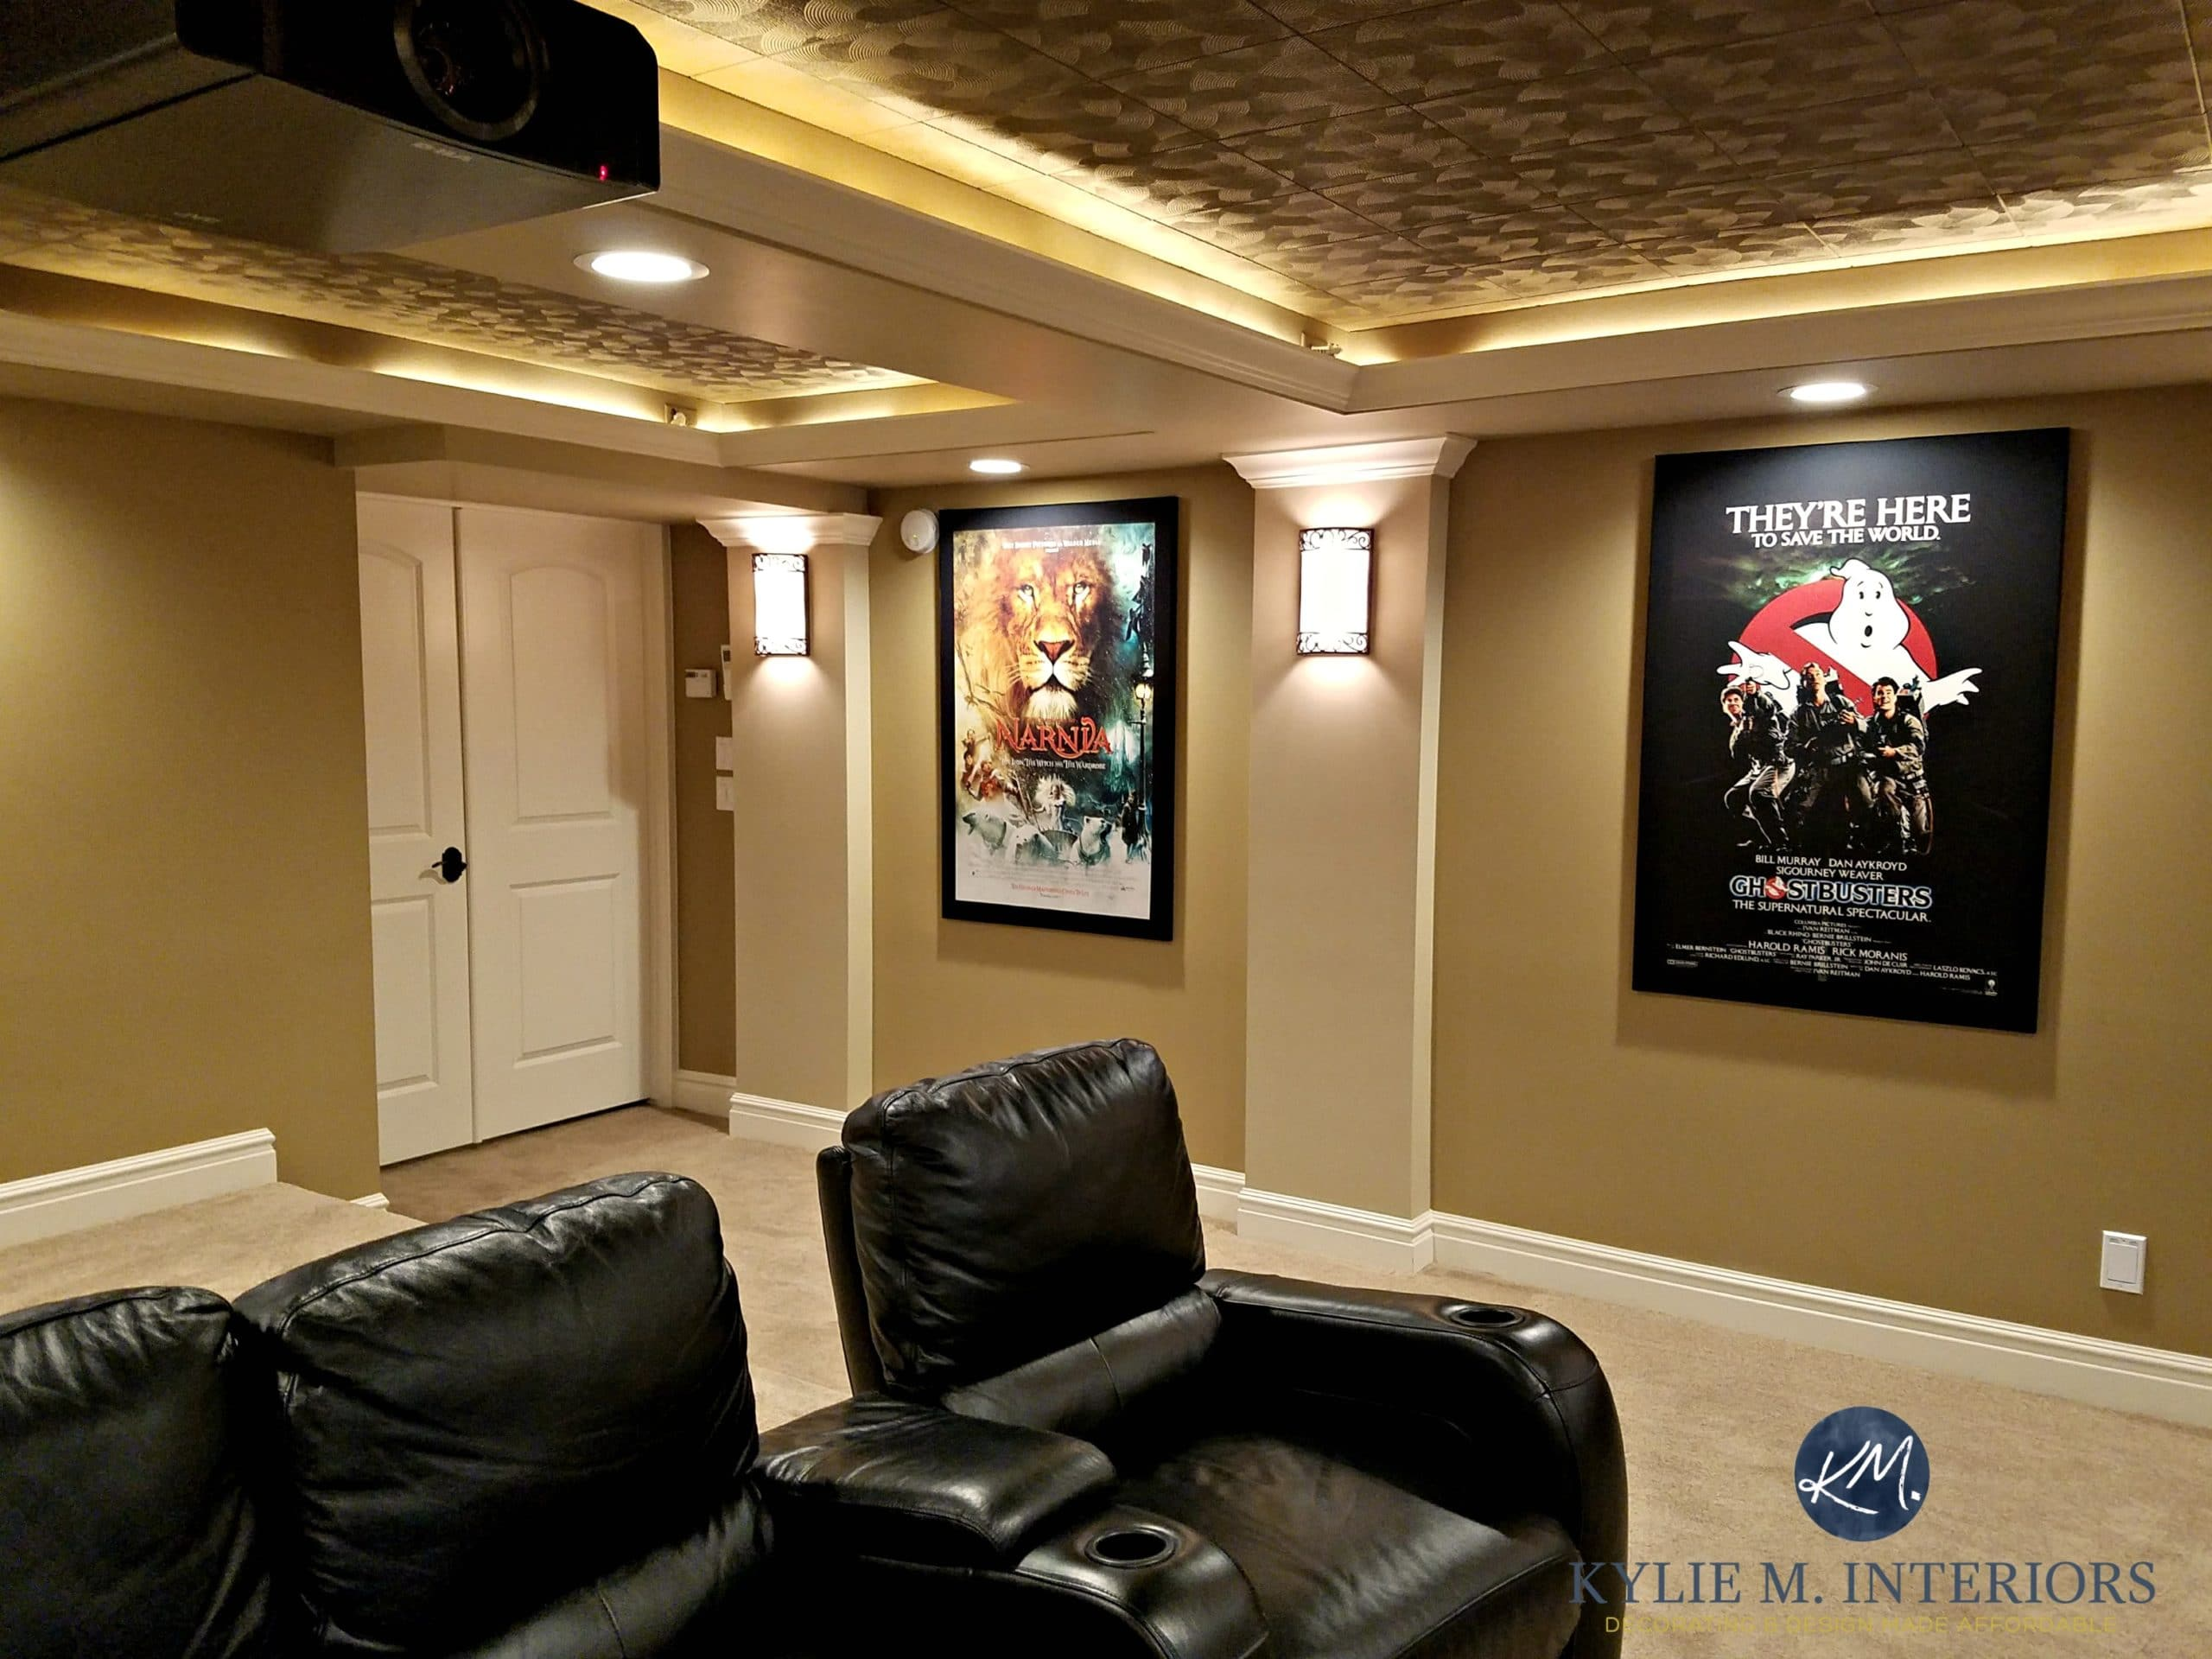 Benjamin moore lenox tan pictures - Home Theatre Room With Double Doors Black Recliners Movie Posters Textured Acoustic Ceiling Tiles Wall Sconces Benjamin Moore Lenox Tan Davenport Tan